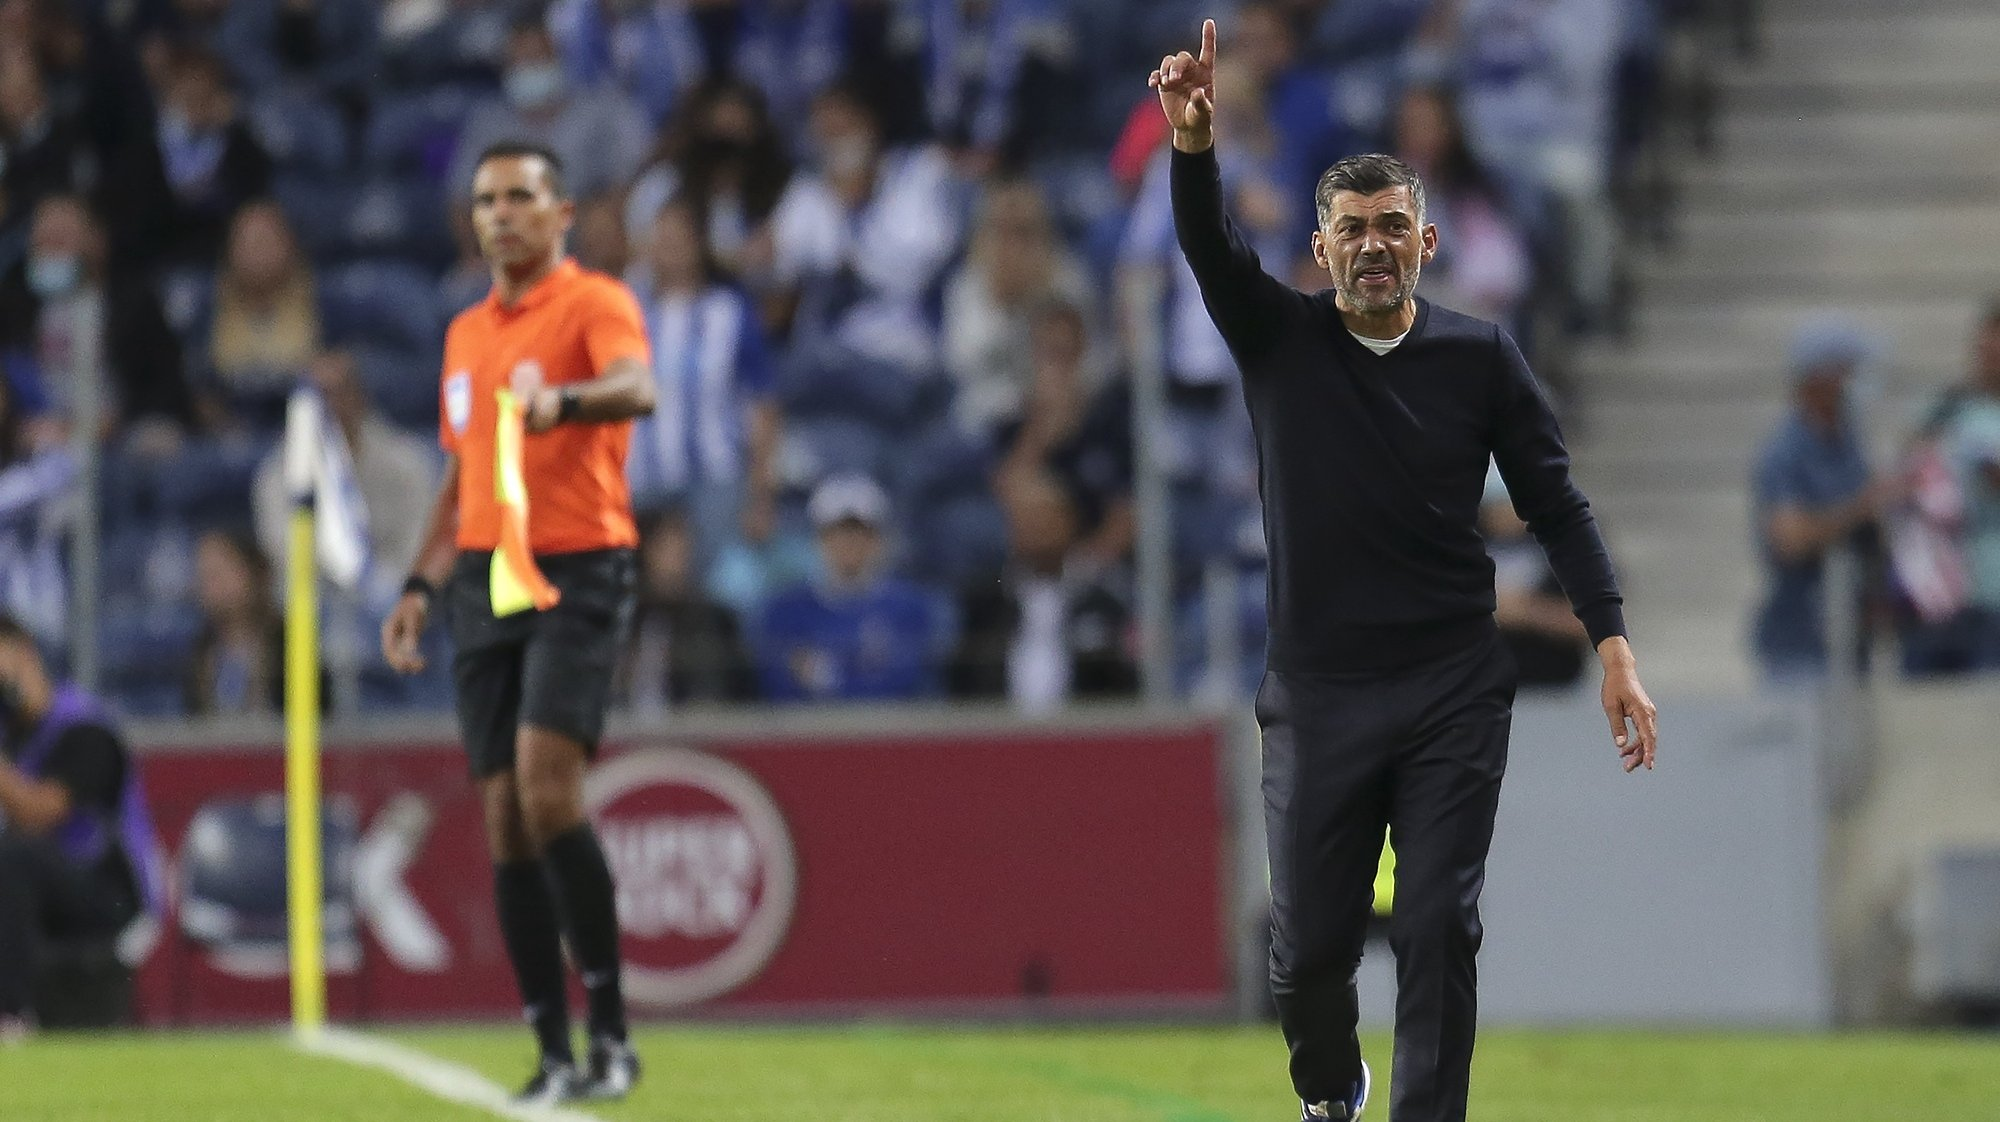 FC Porto head coach Sergio Conceicao reacts during their Portuguese First League soccer match against Moreirense held at Dragao Stadium in Porto, Portugal, 19th September 2021. MANUEL FERNANDO ARAUJO/LUSA